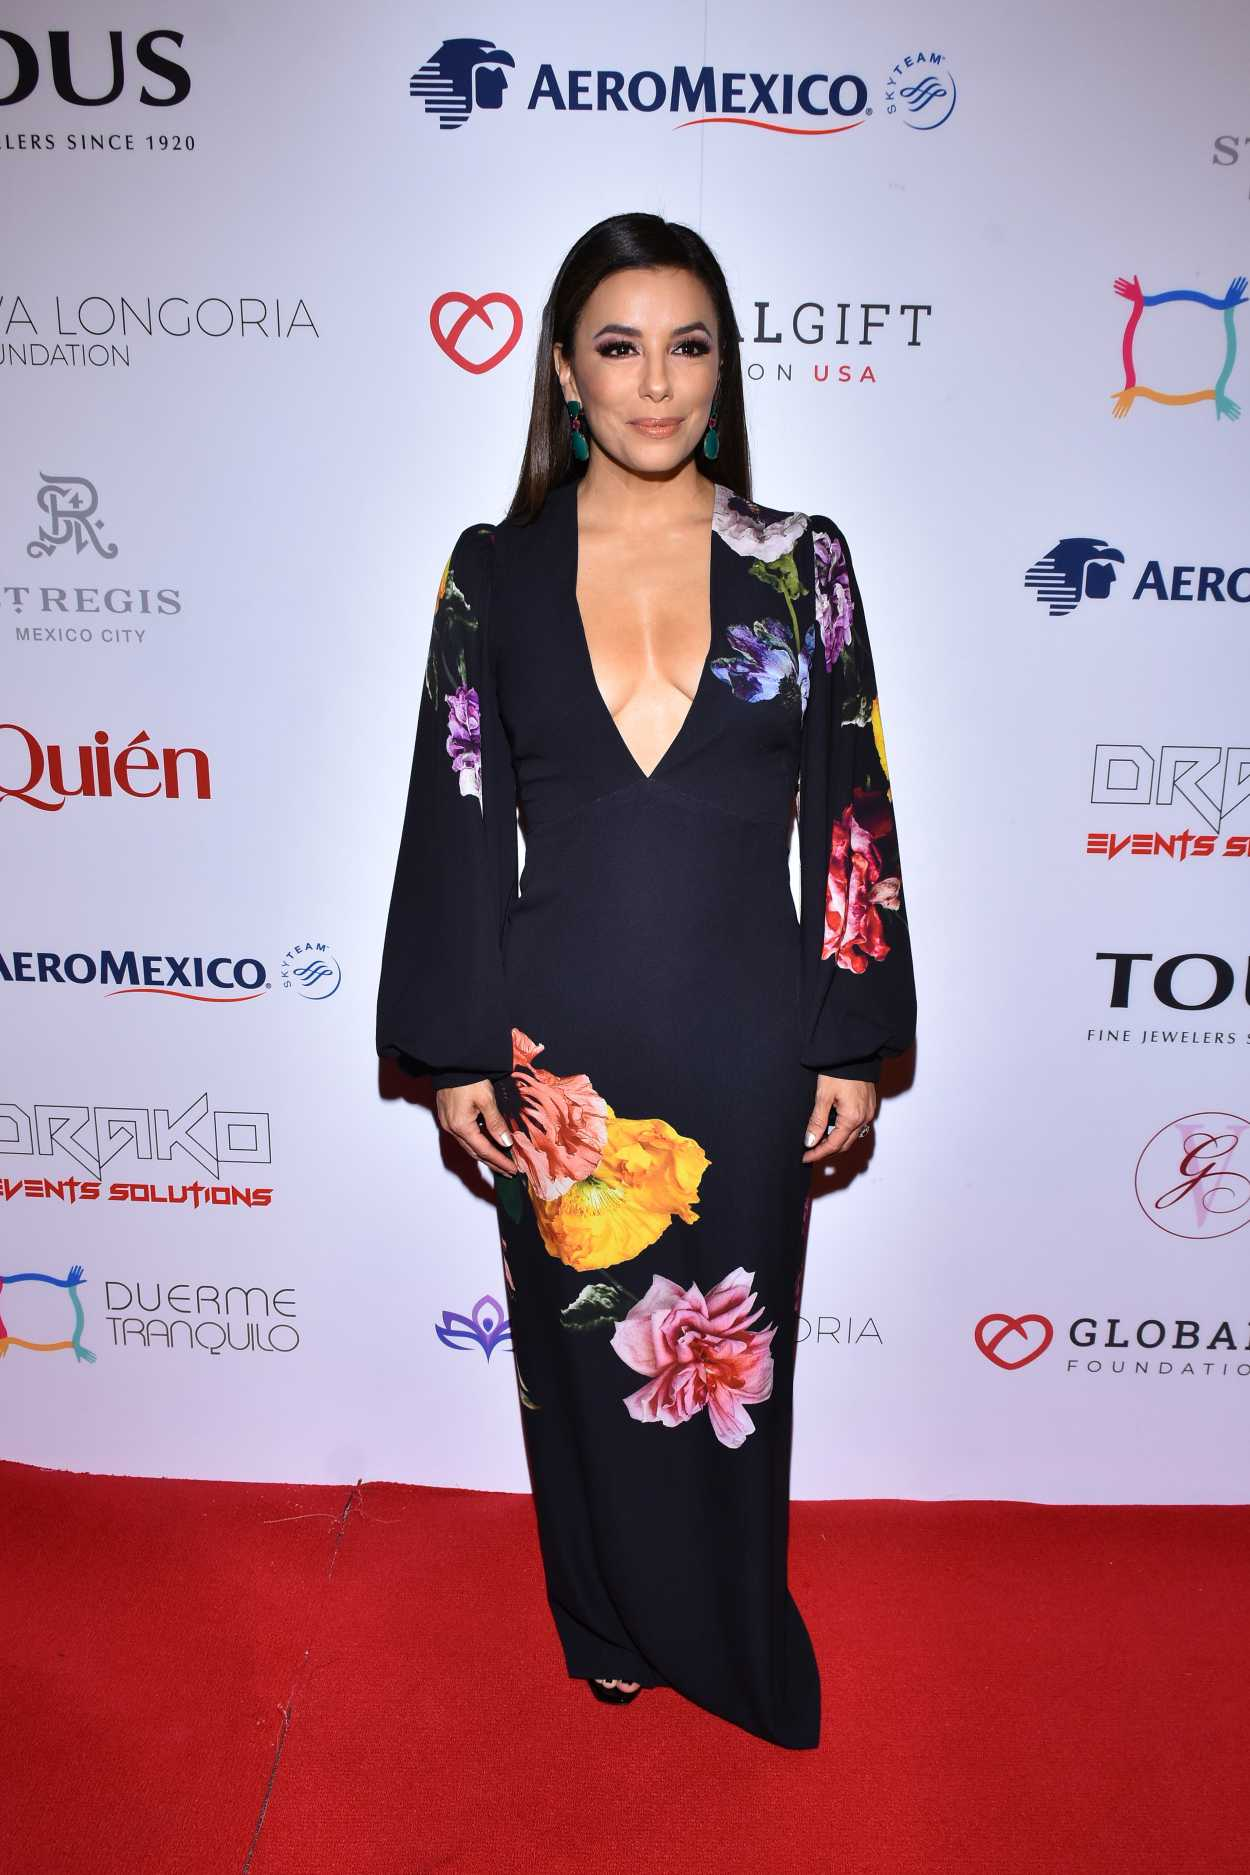 Eva Longoria Attends the 5th Global Gift Foundation Gala in Mexico City 11/19/2019